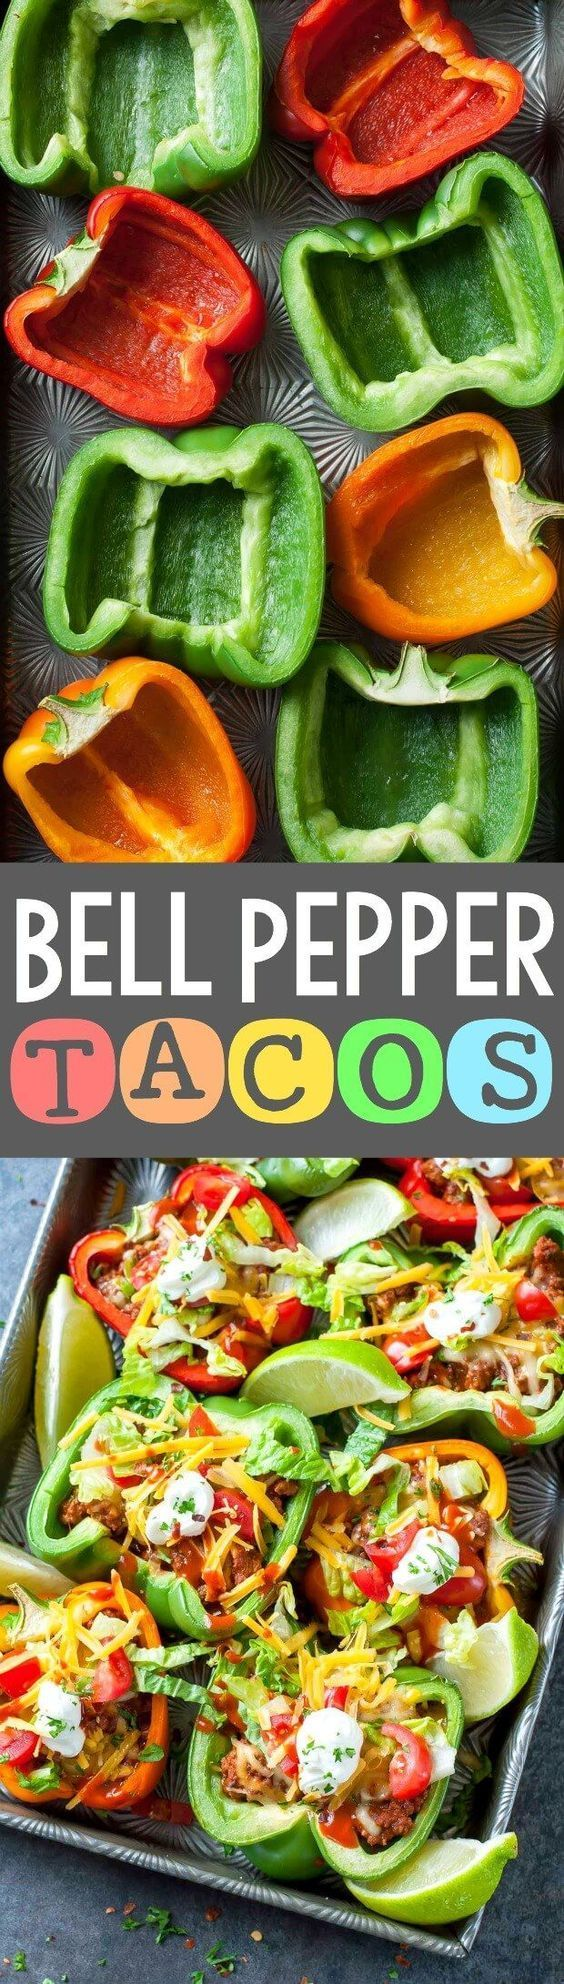 taco bell beef research Taco bell brings people together with mexican-inspired food we're one of a kind—like you customize your faves sign up for exclusive offers order now.